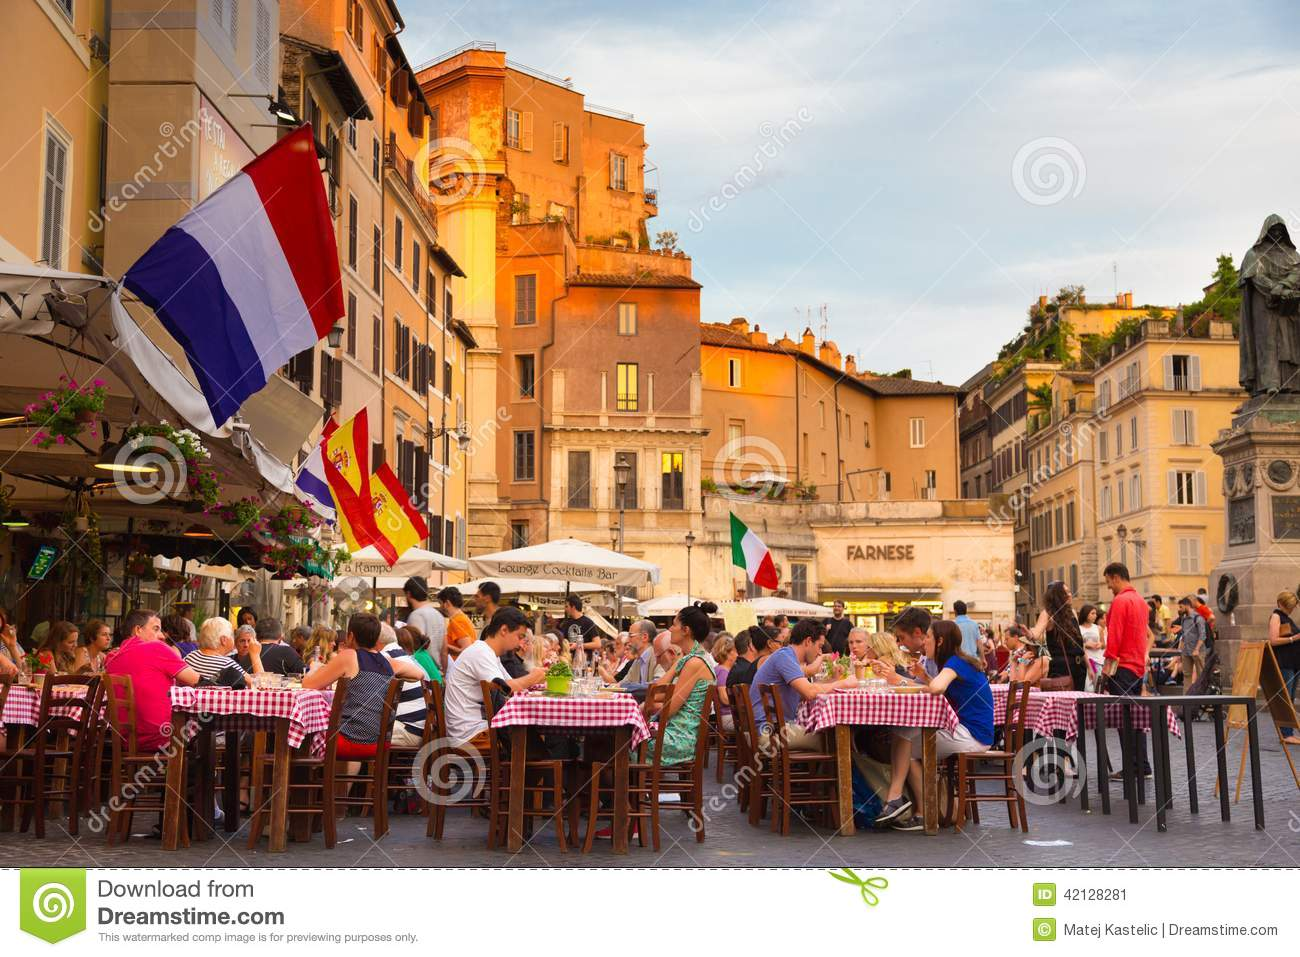 Piazza Campo De Fiori In Rome Italy Editorial Photo  : piazza campo de fiori rome italy june people having aperitif which traditionally includes free all you can eat buffet pizzas 42128281 from www.dreamstime.com size 1300 x 957 jpeg 183kB